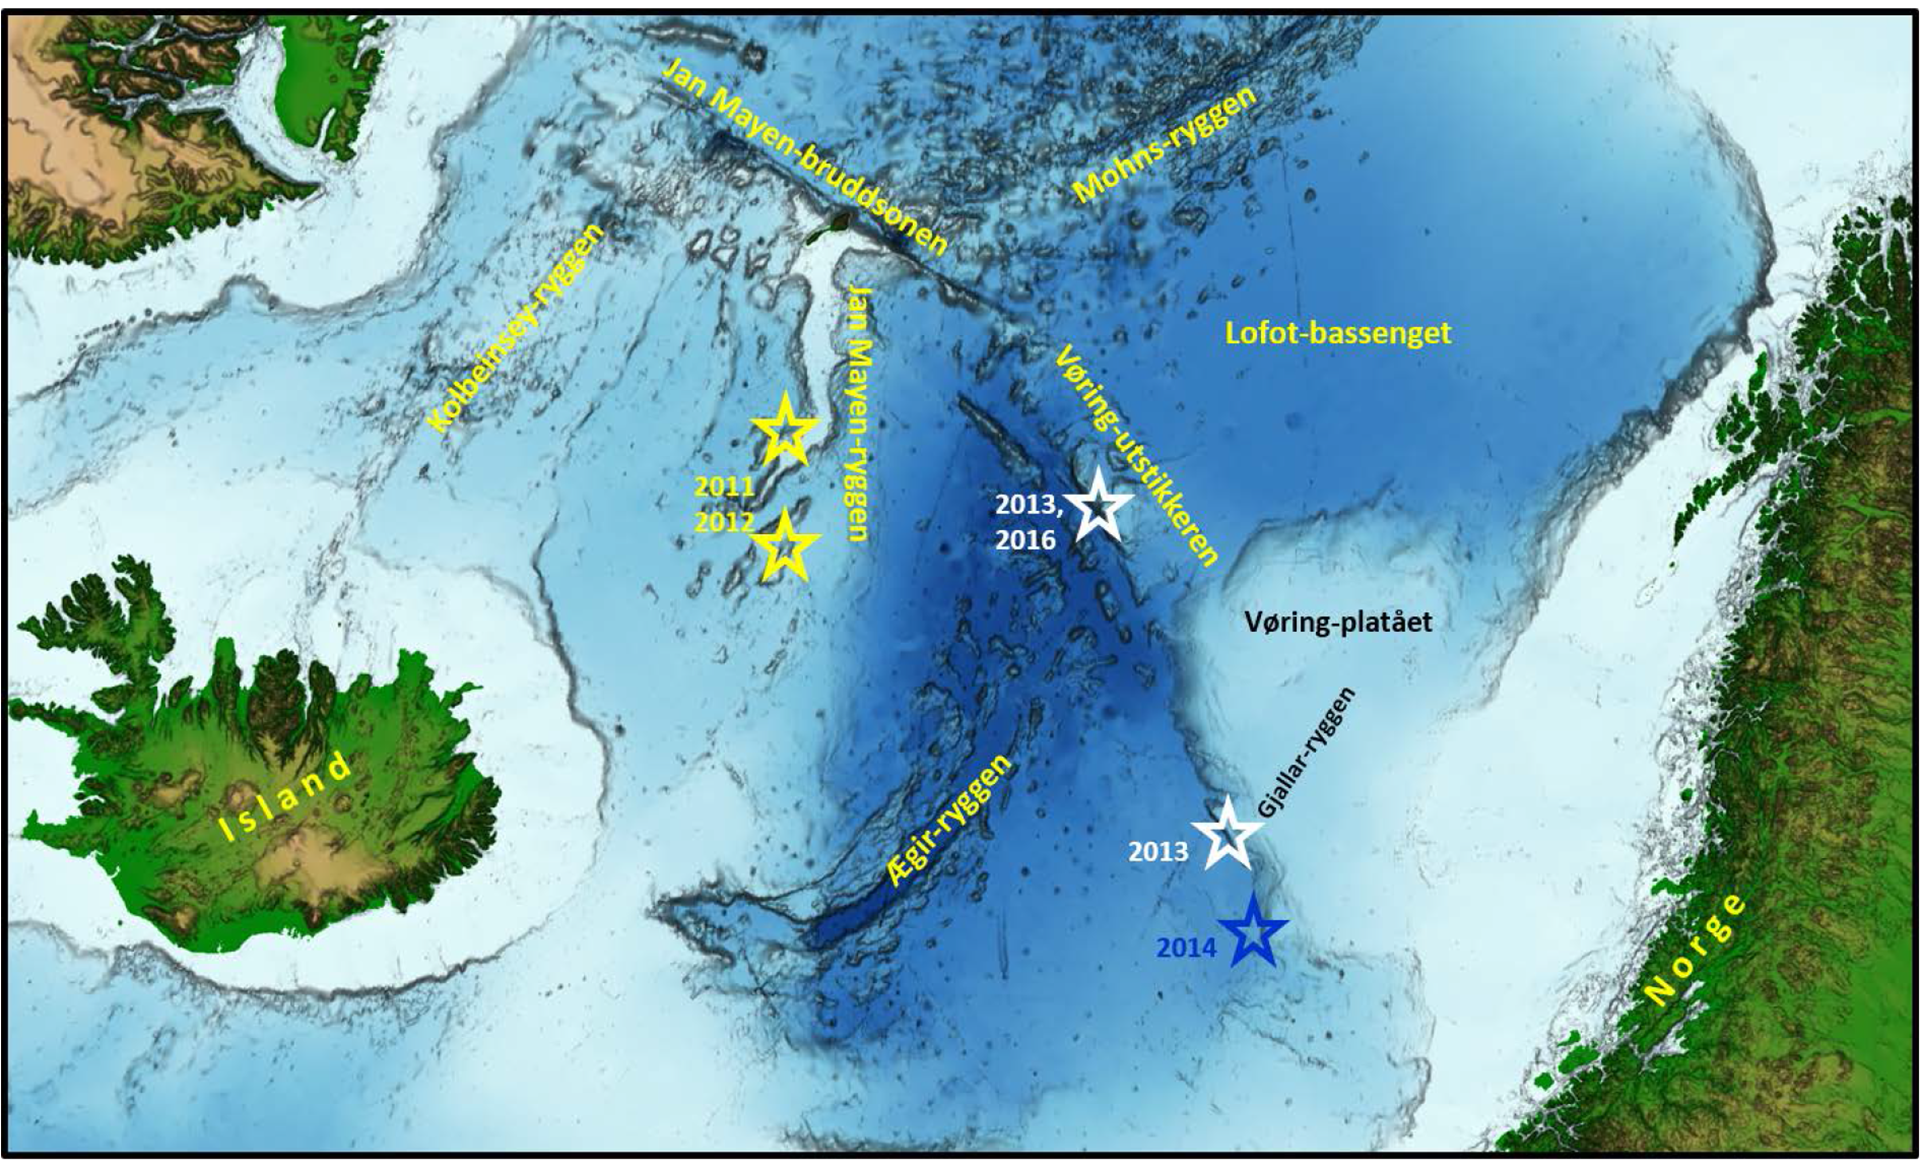 Maps showing the localities of the Norwegian Petroleum Directorate's sampling of solid rock on the seabed.